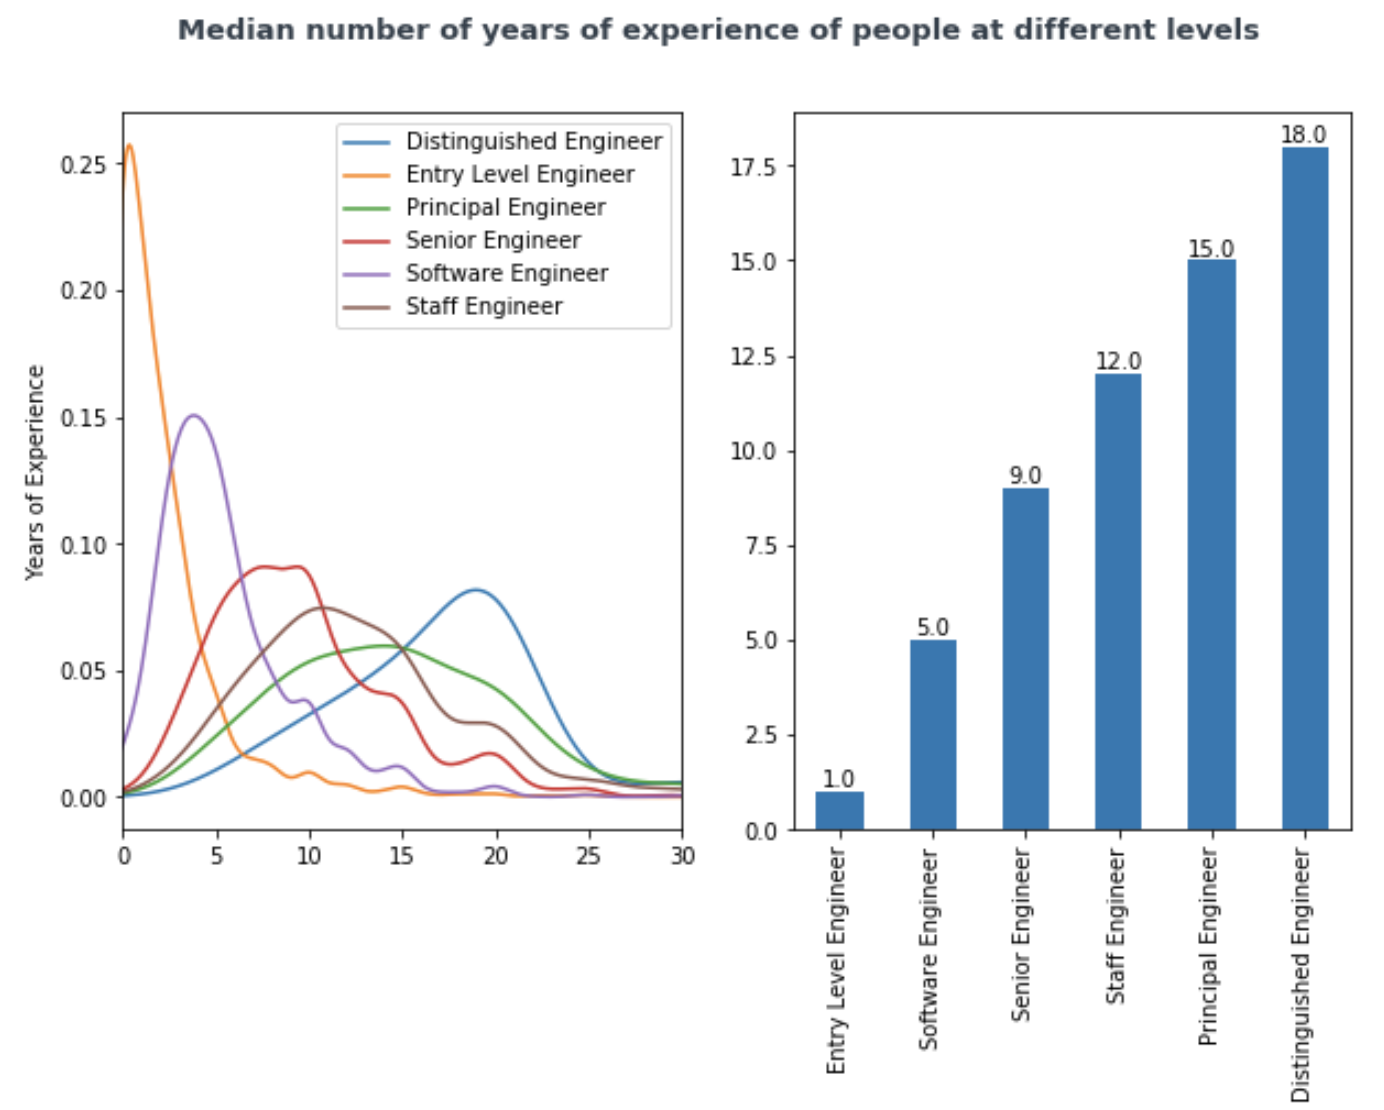 Median years of experience for standard levels